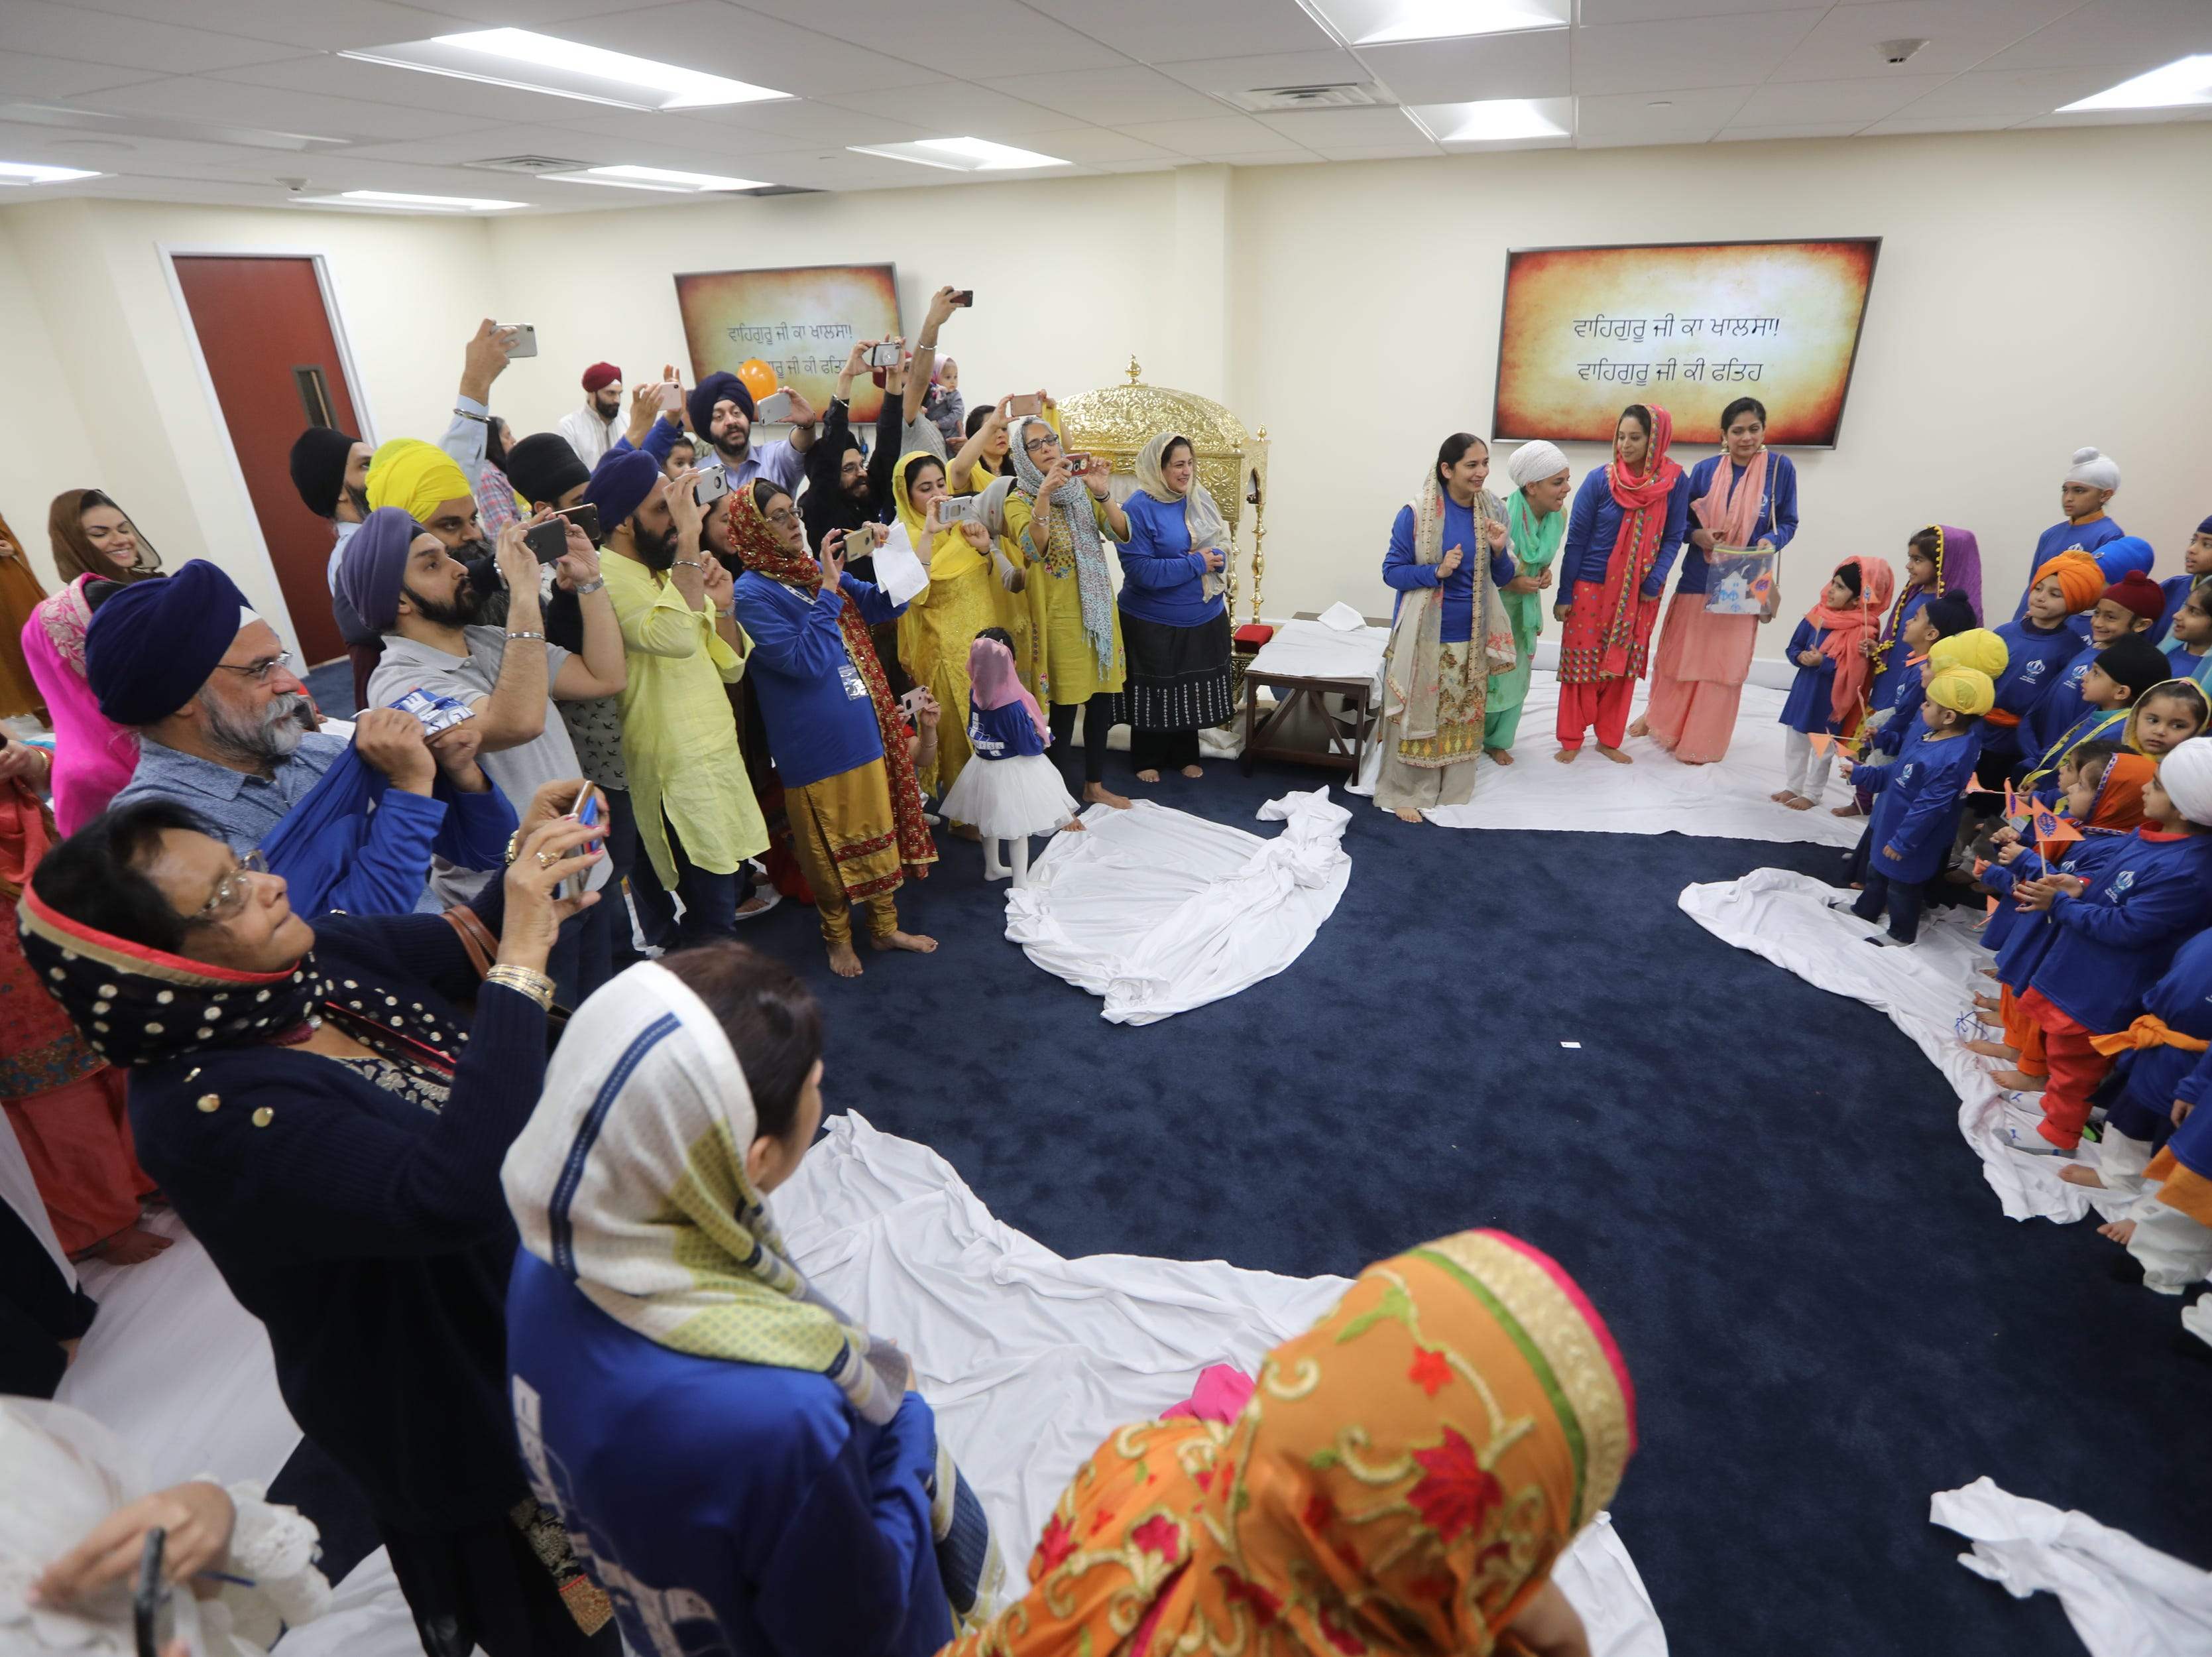 Parents and faculty members of the Guru Nanak Mission's Sikh Academy for Gurmat Education (SAGE), take pictures of students in Oakland. Sunday, April, 14, 2019